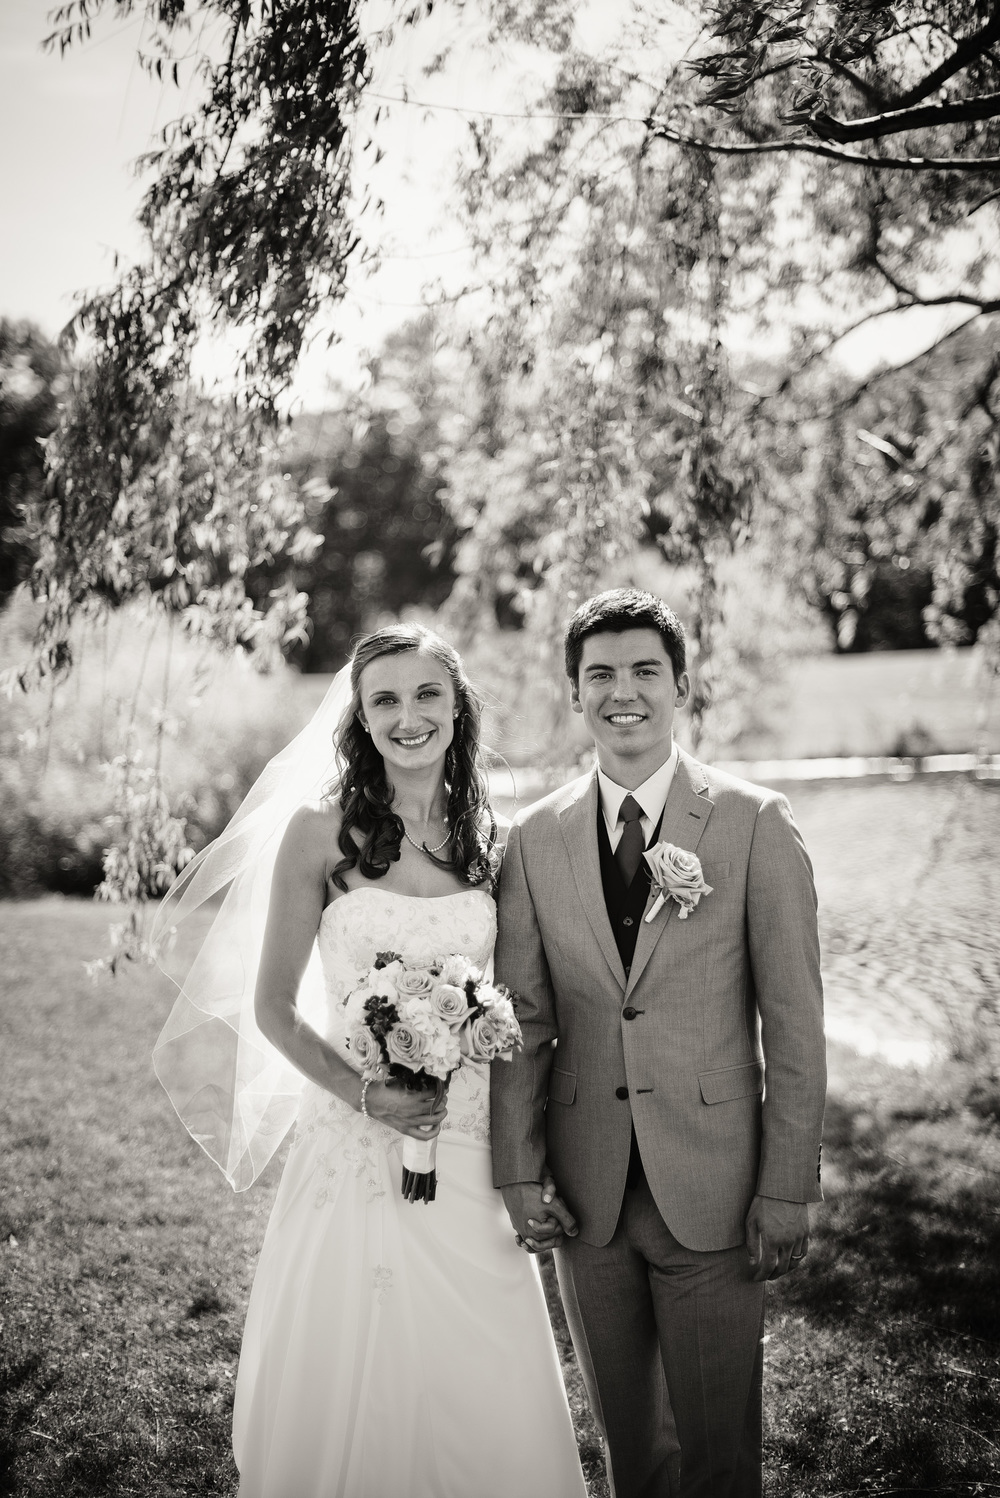 Blue Heron Pines Golf Club sunshine daytime wedding bride groom smiling husband wife love portrait THPHOTO bw